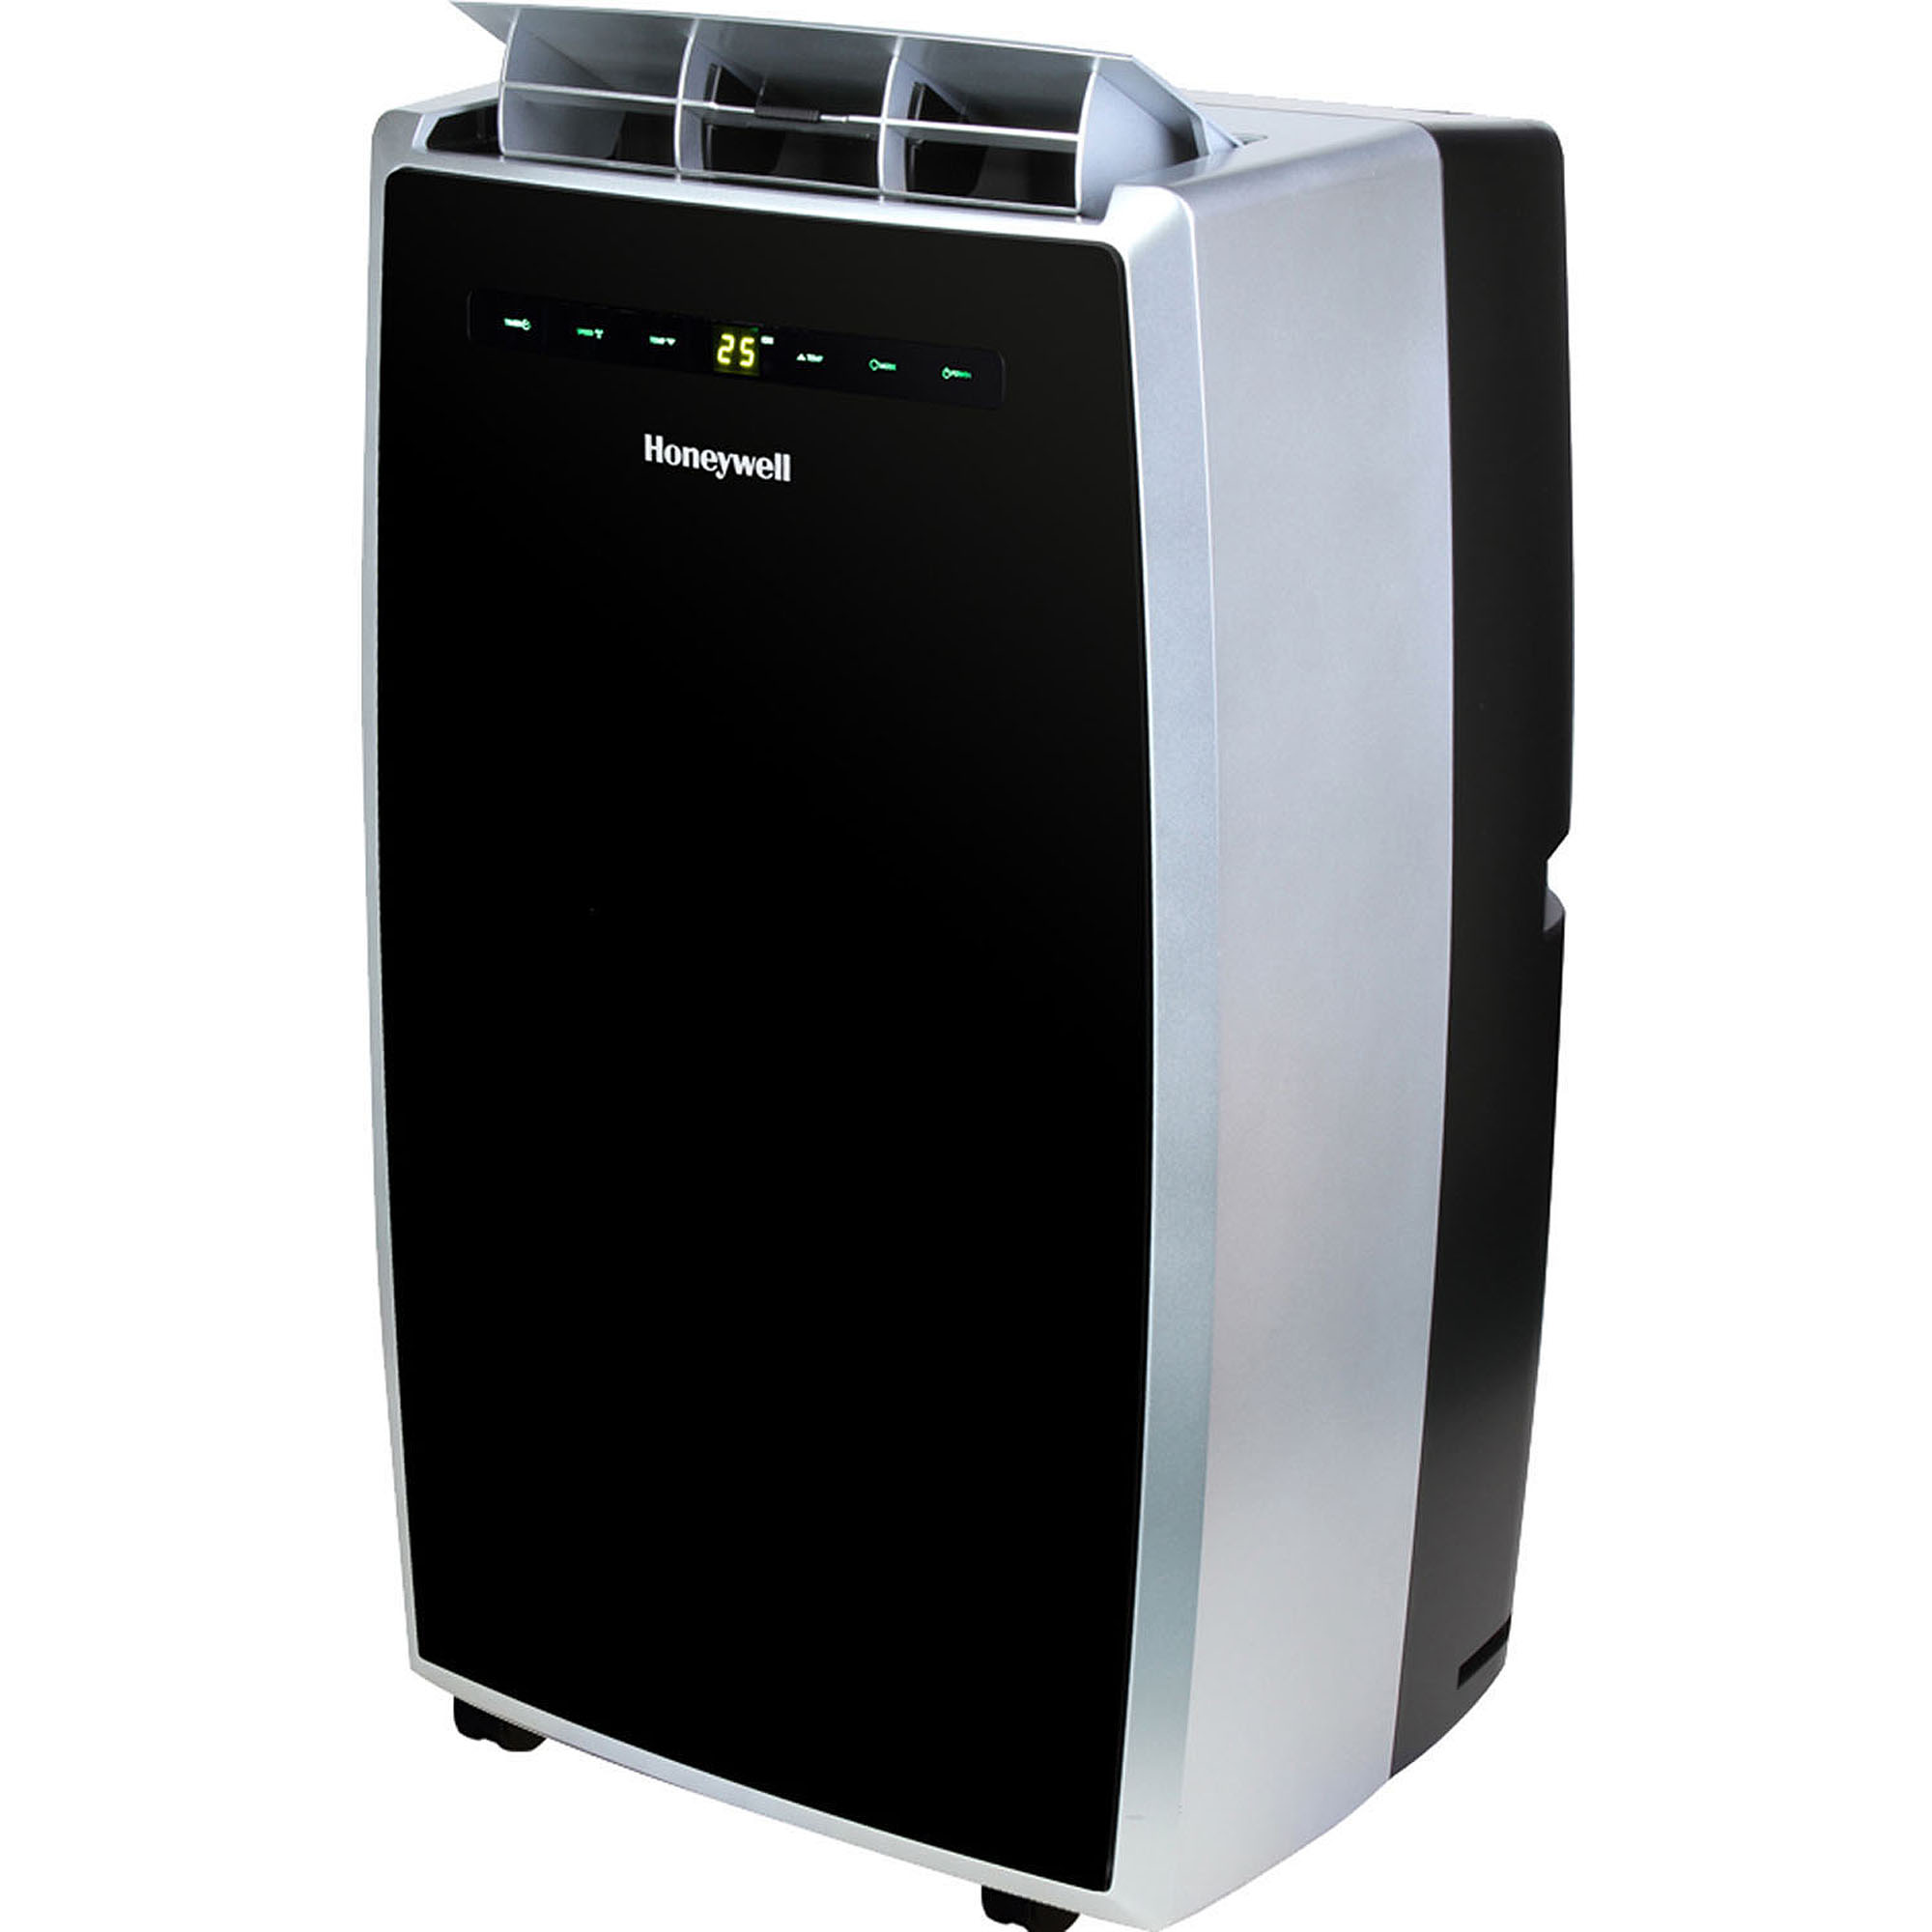 Honeywell MN Series Portable Air Conditioner with Dehumidifier & Fan